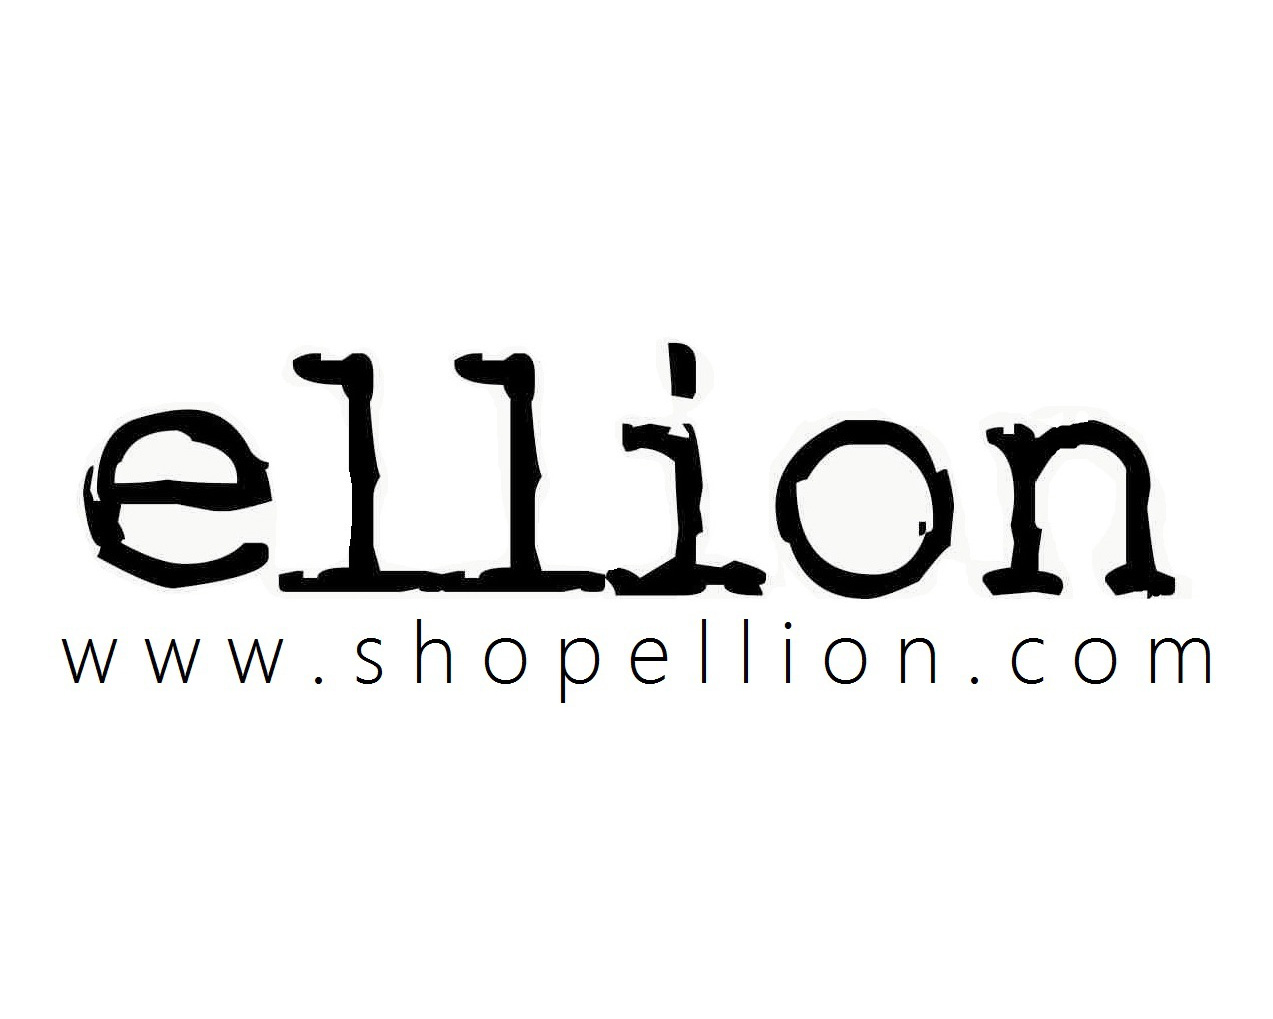 FINAL - ellion logo with website-1.jpg